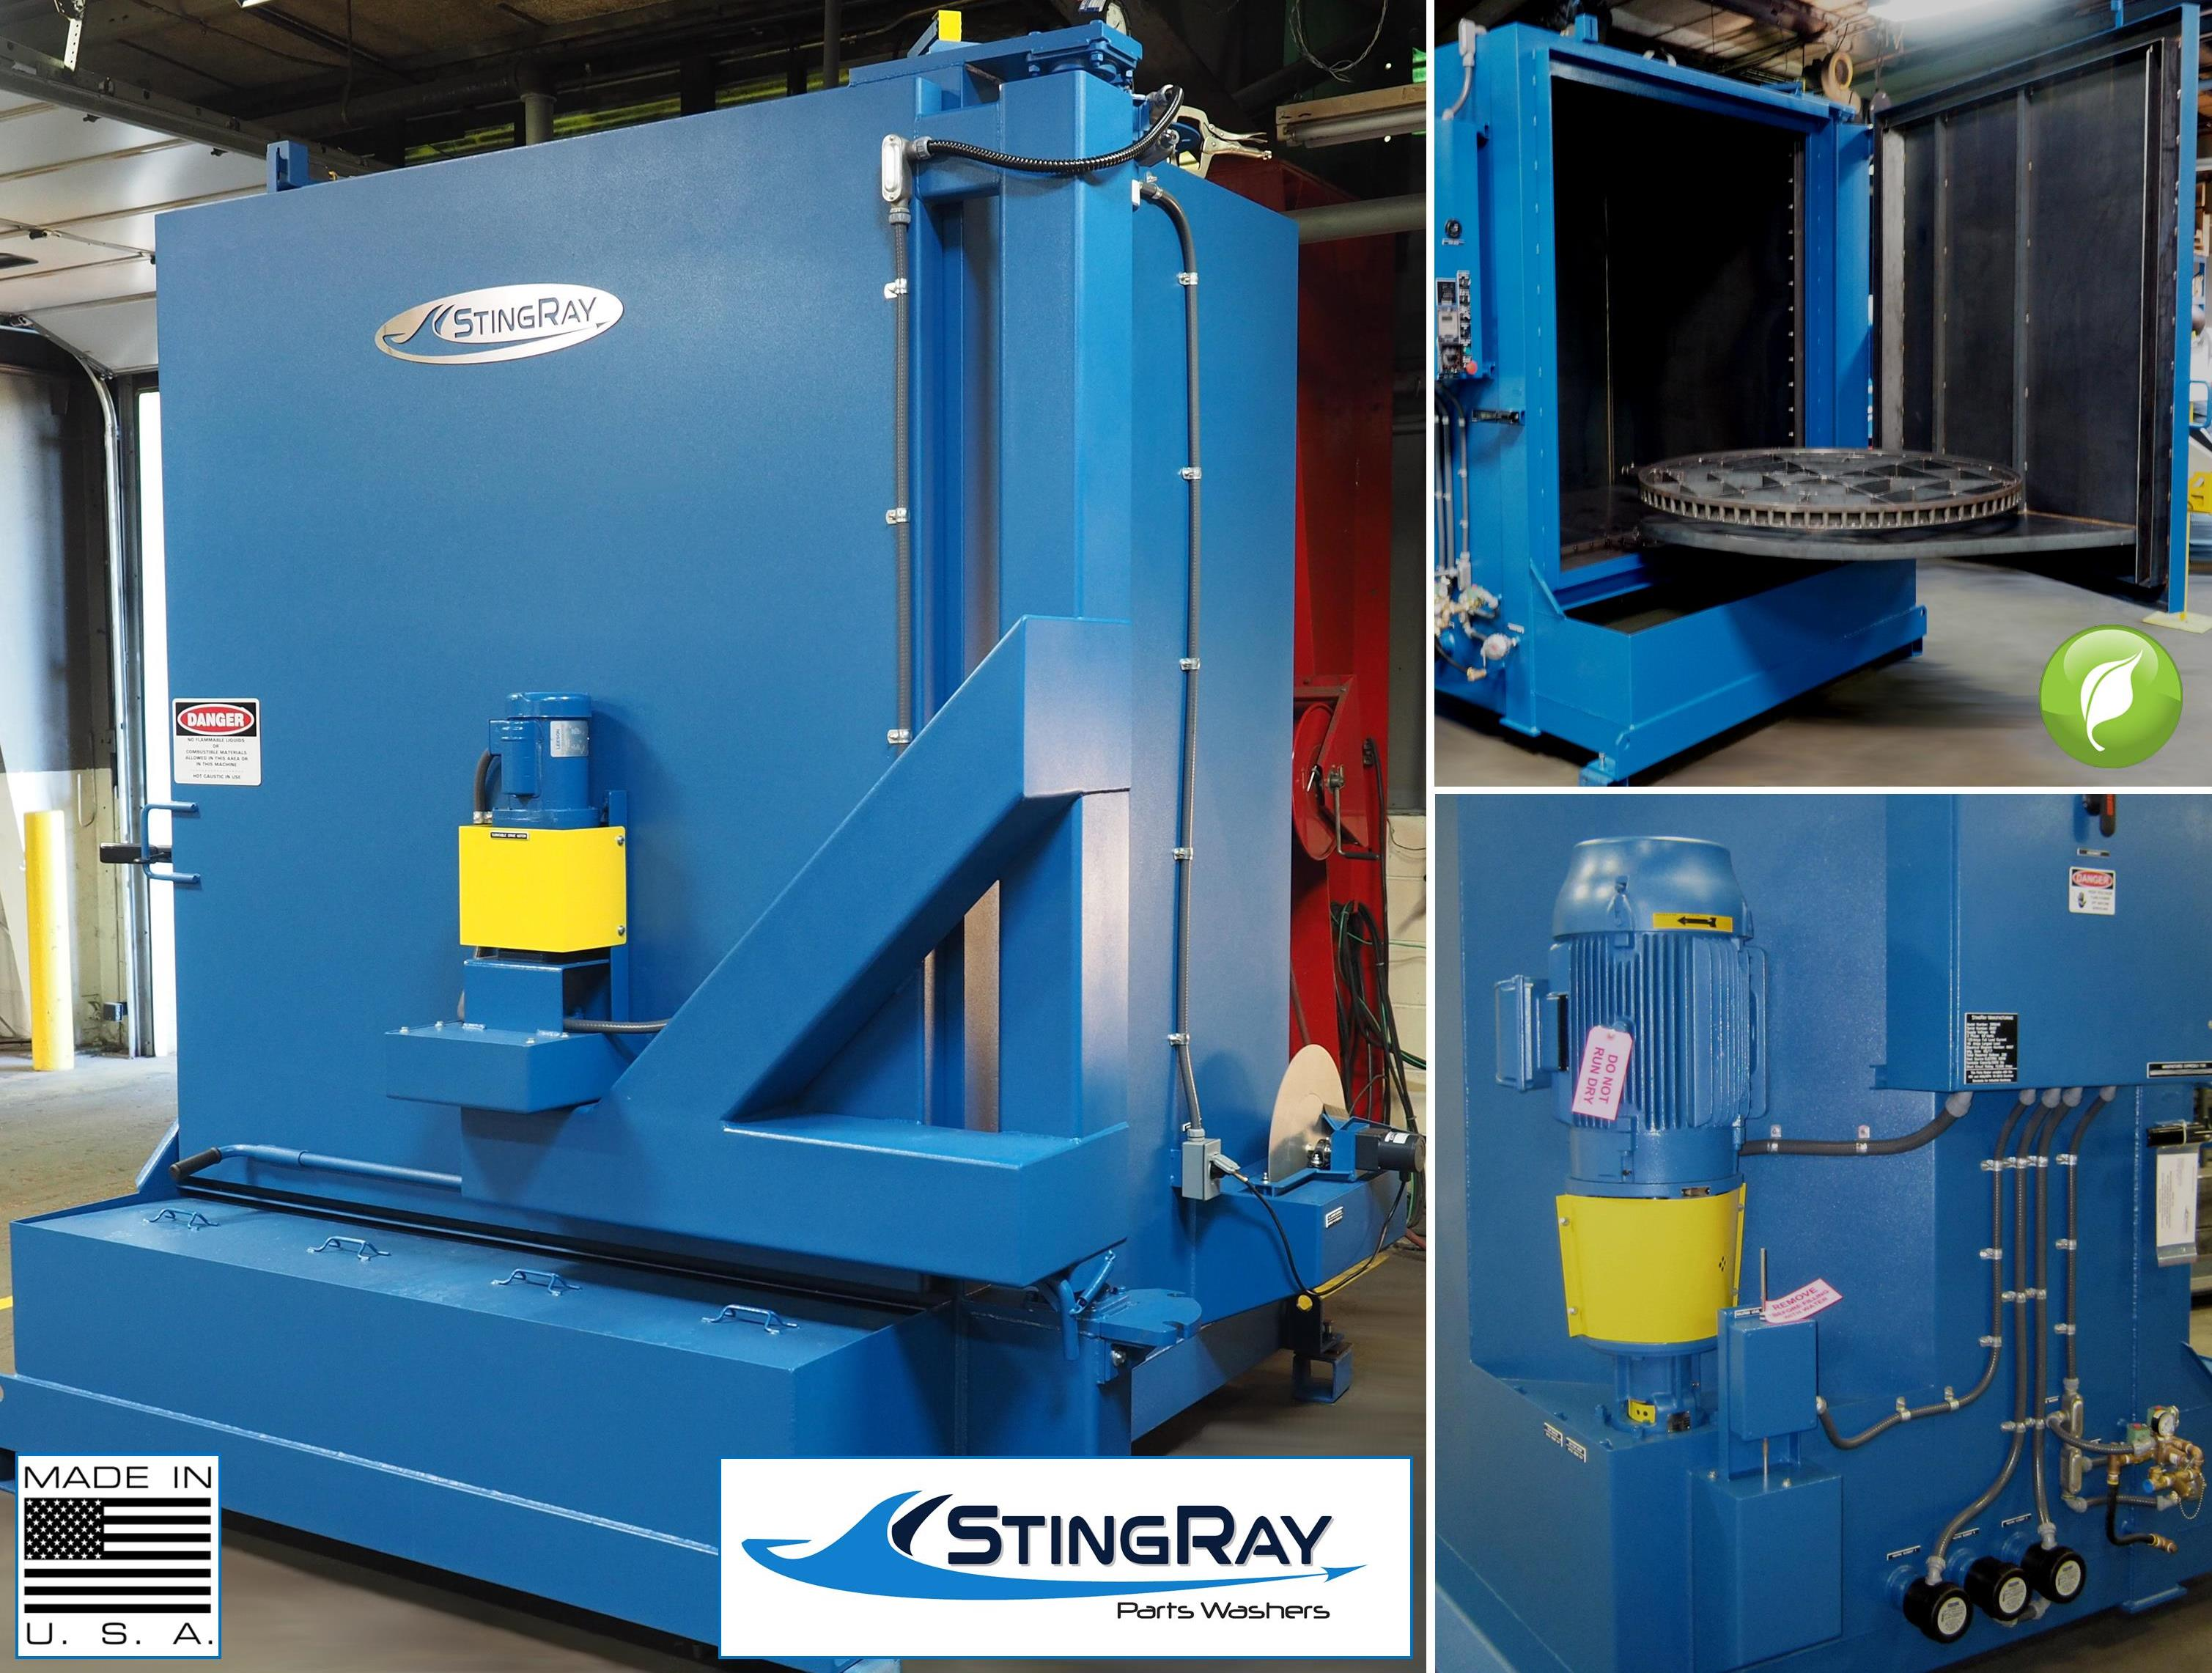 StingRay Heavy Duty Industrial Parts Washer for Electric Power Generator Engines and Components